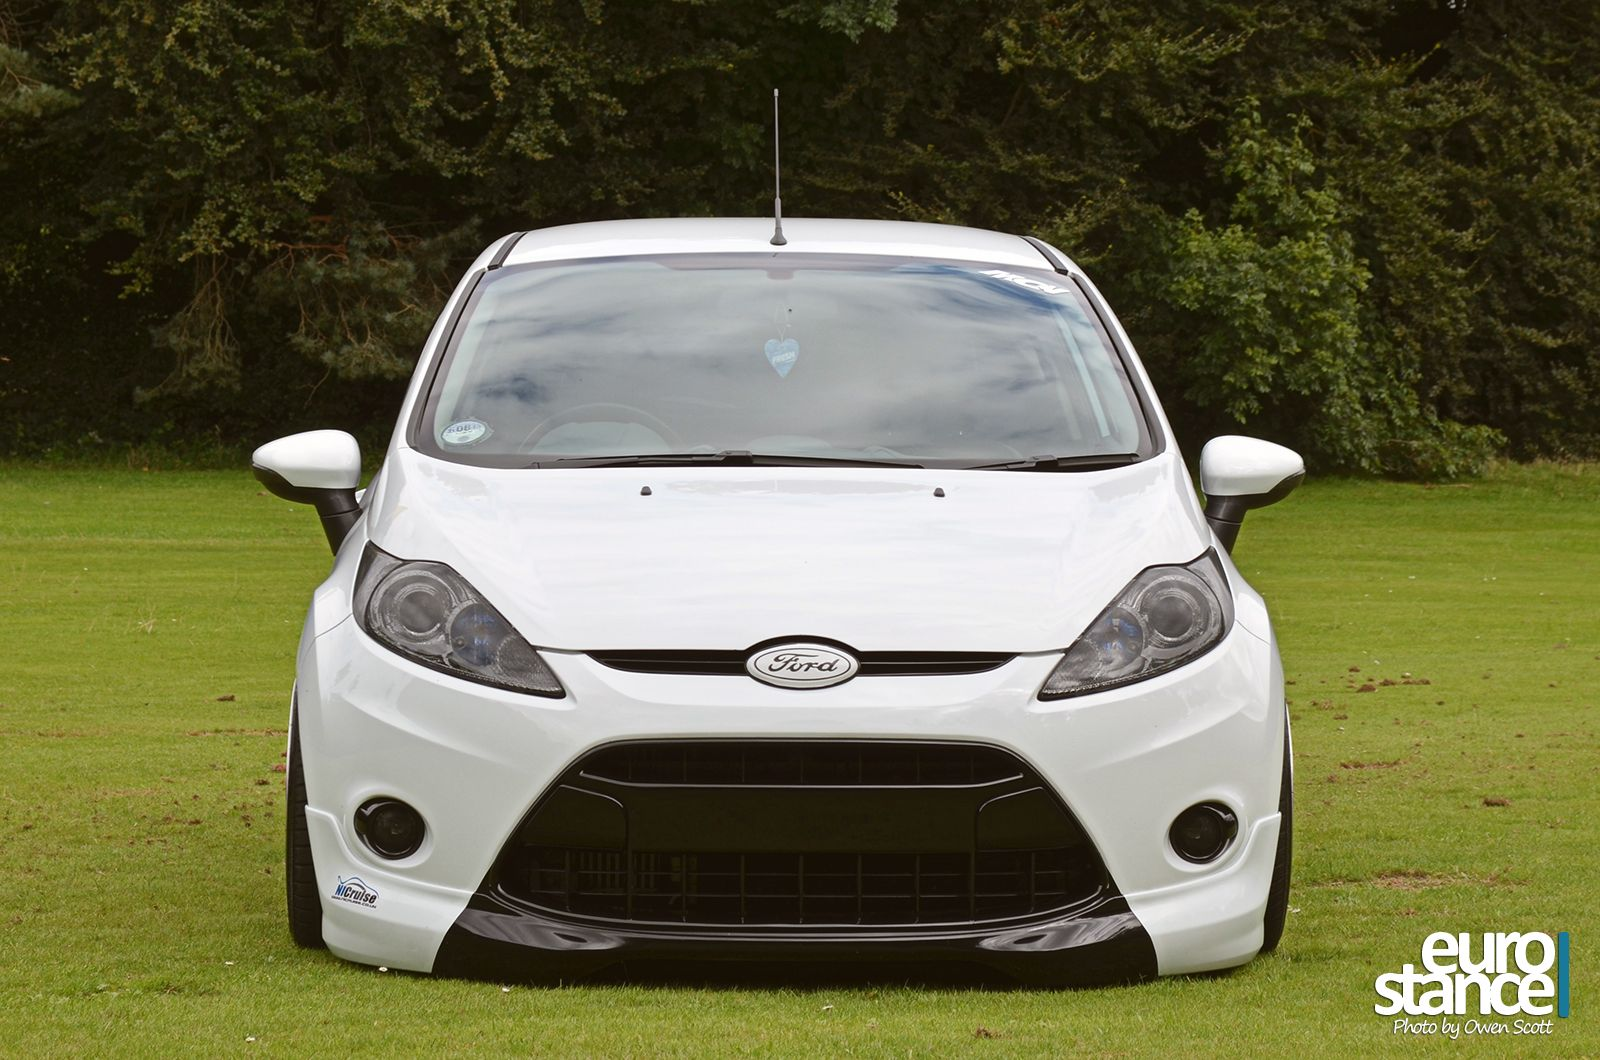 Stephen Chambers Mk7 Ford Fiesta On Hydraulics Stance With